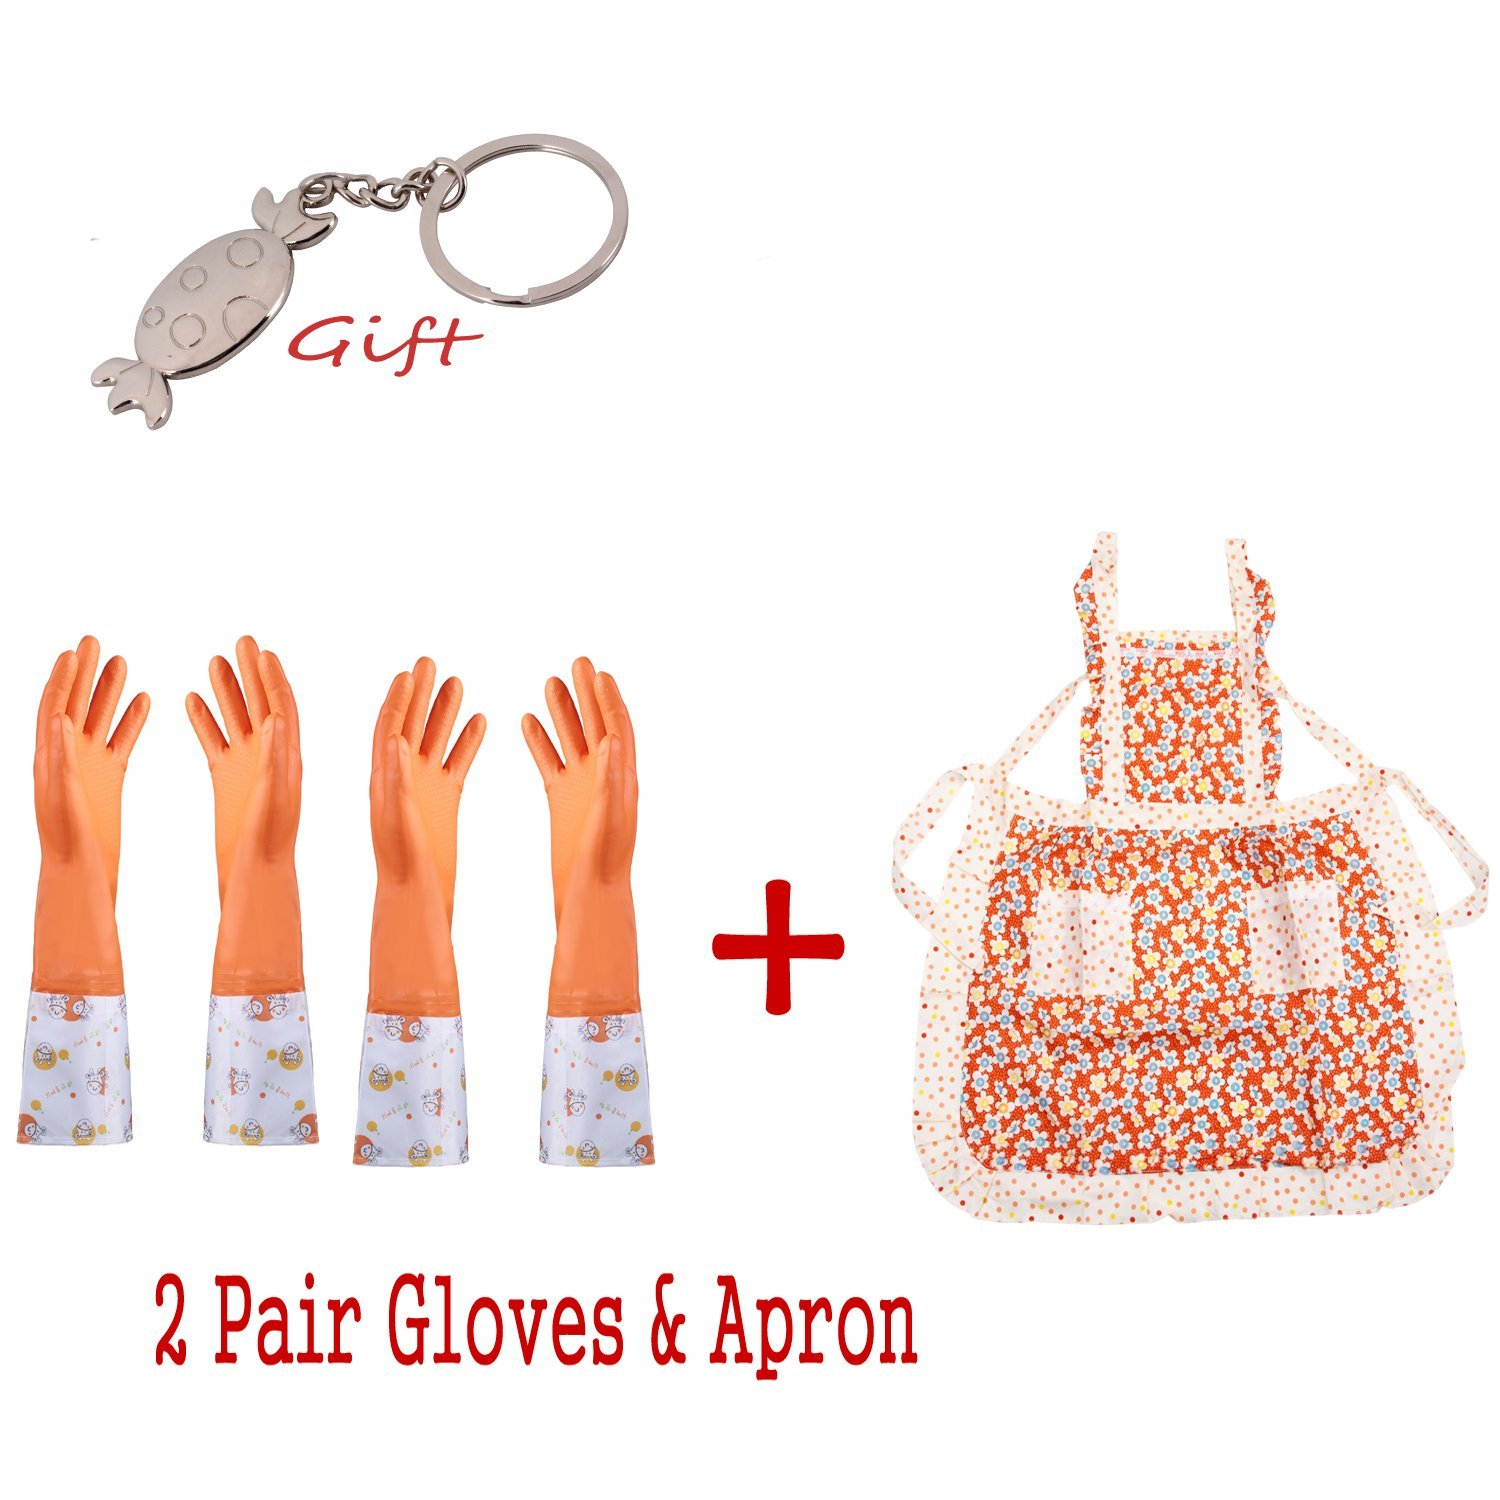 ULT-unite Long Sleeve Latex Kitchen Wash Dishes Dishwashing Gloves Cleaning Kit With Apron, Keep Warm Gloves&Thin Gloves&Apron 3 in 1 Household Gloves Cleaning Tools Accessories